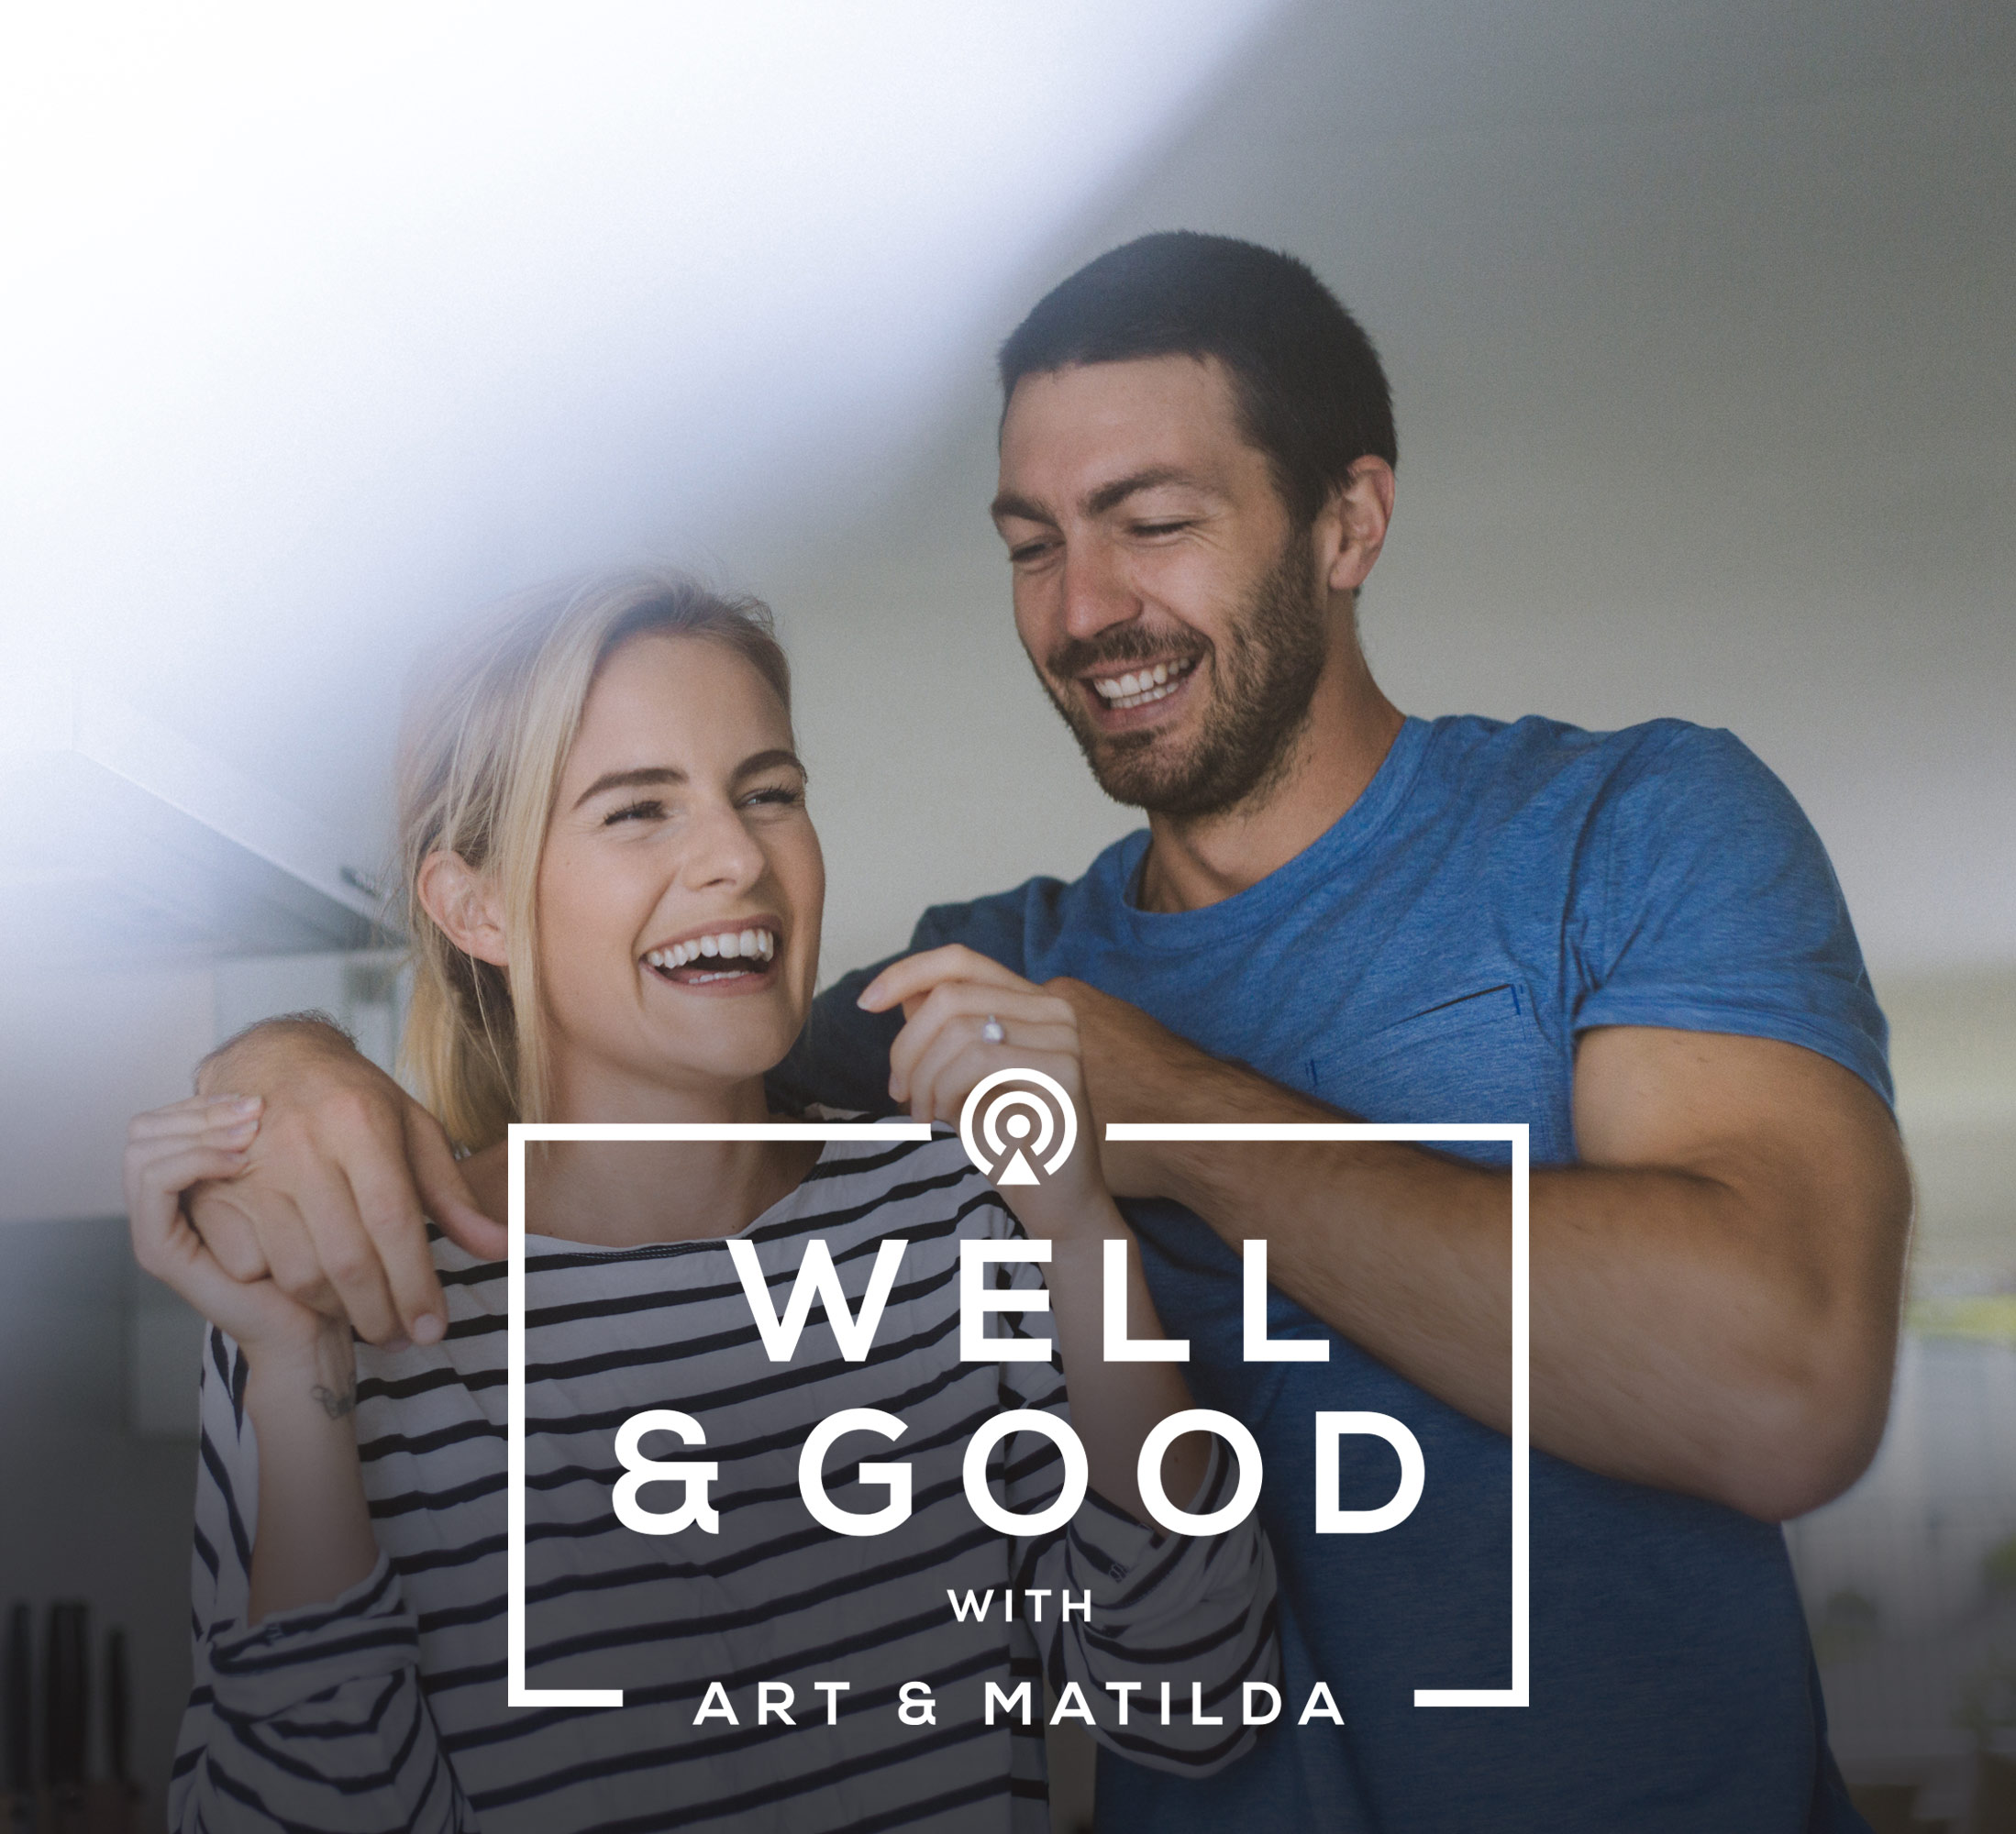 finest selection 240fd 51c91 Well & Good with Art & Matilda on Apple Podcasts